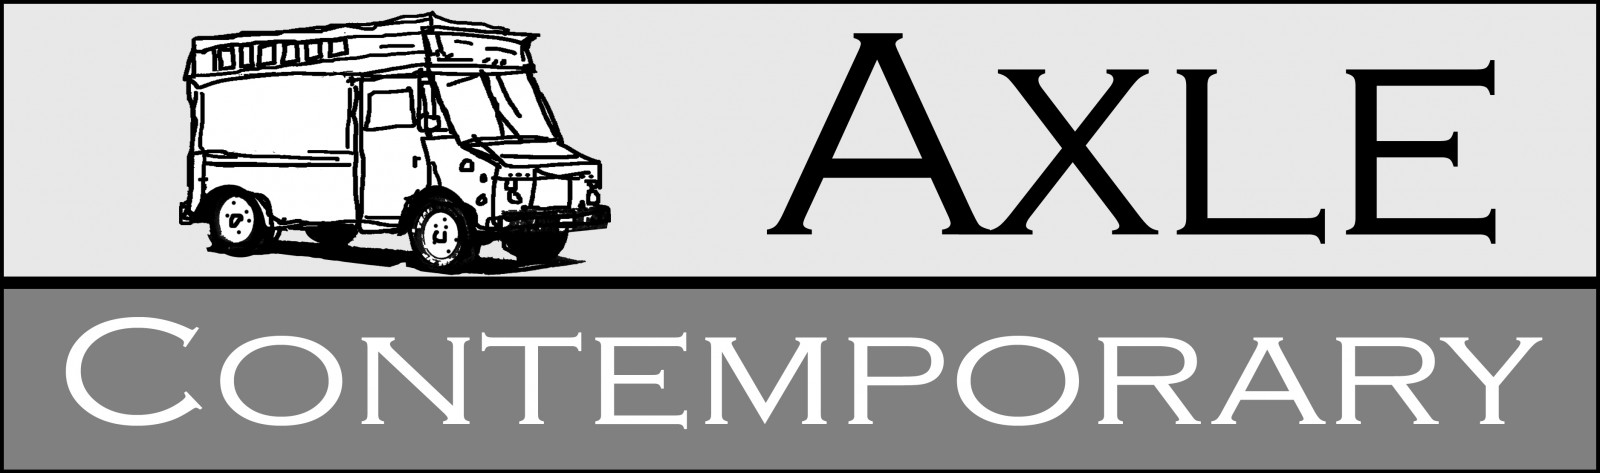 Axle-Contemporary-logo-.jpg